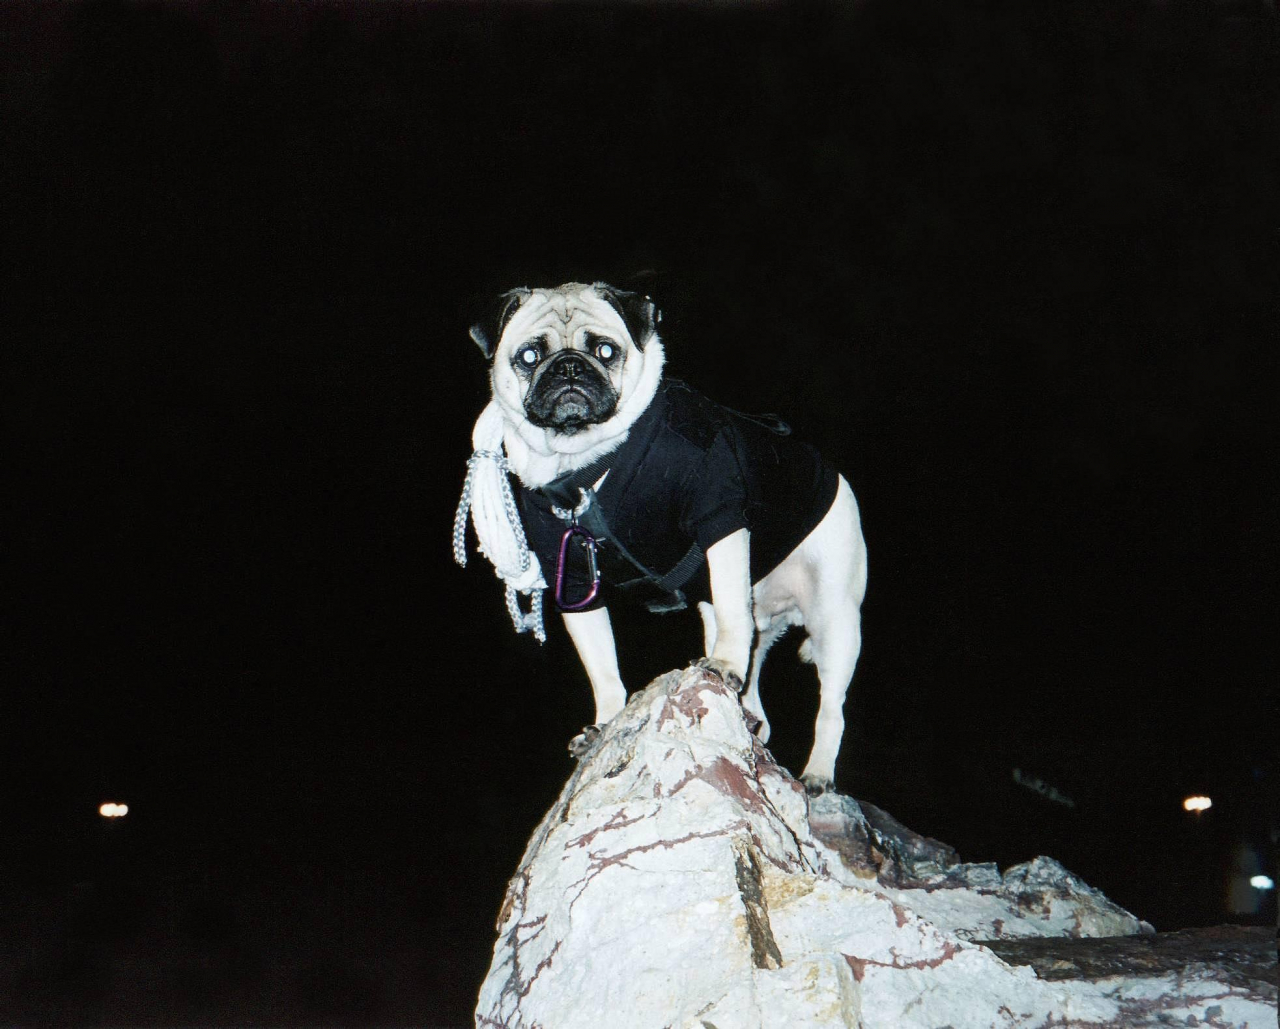 A picture from In the Heart of Phoenix by Vinny the Pug